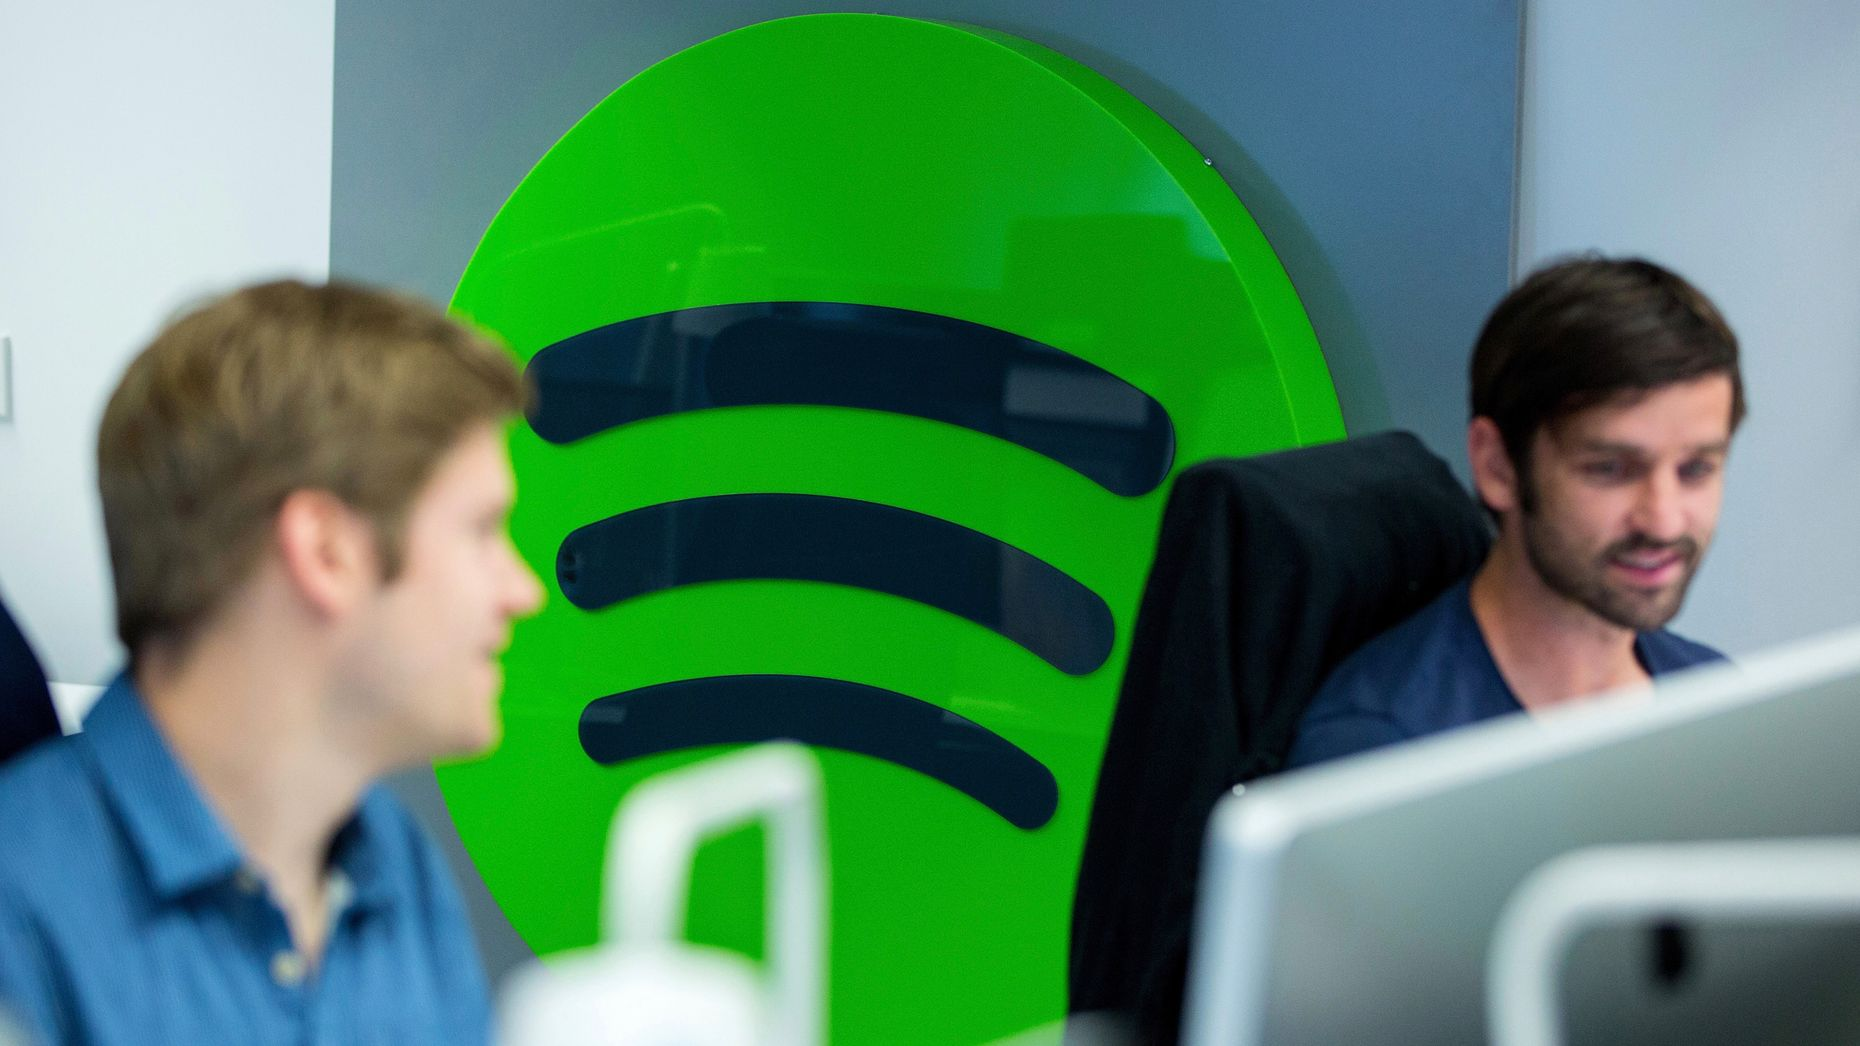 Employees work at Spotify's offices in Berlin. Photo: Bloomberg